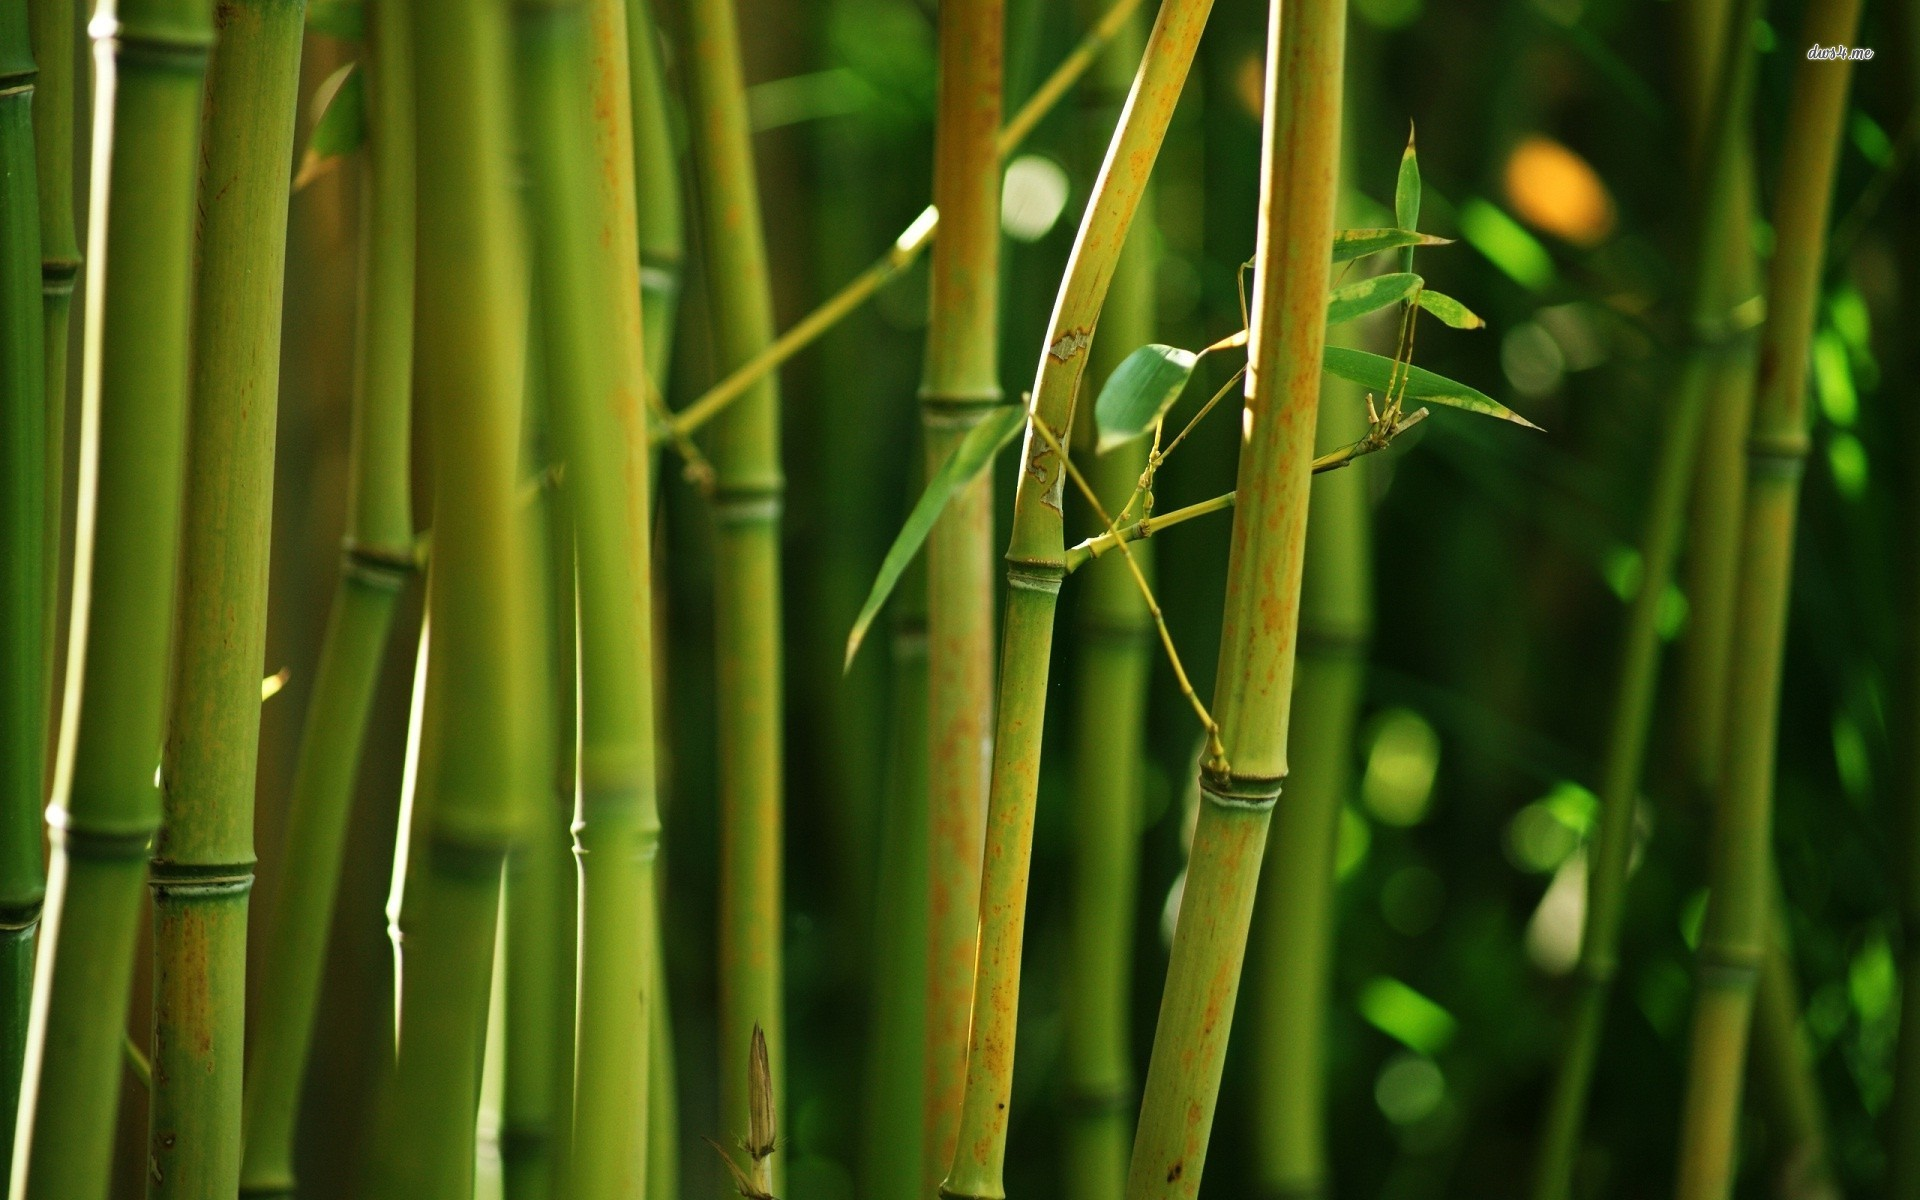 11793-bamboo-forest-1920×1200-nature-wallpaper | good vibes radio